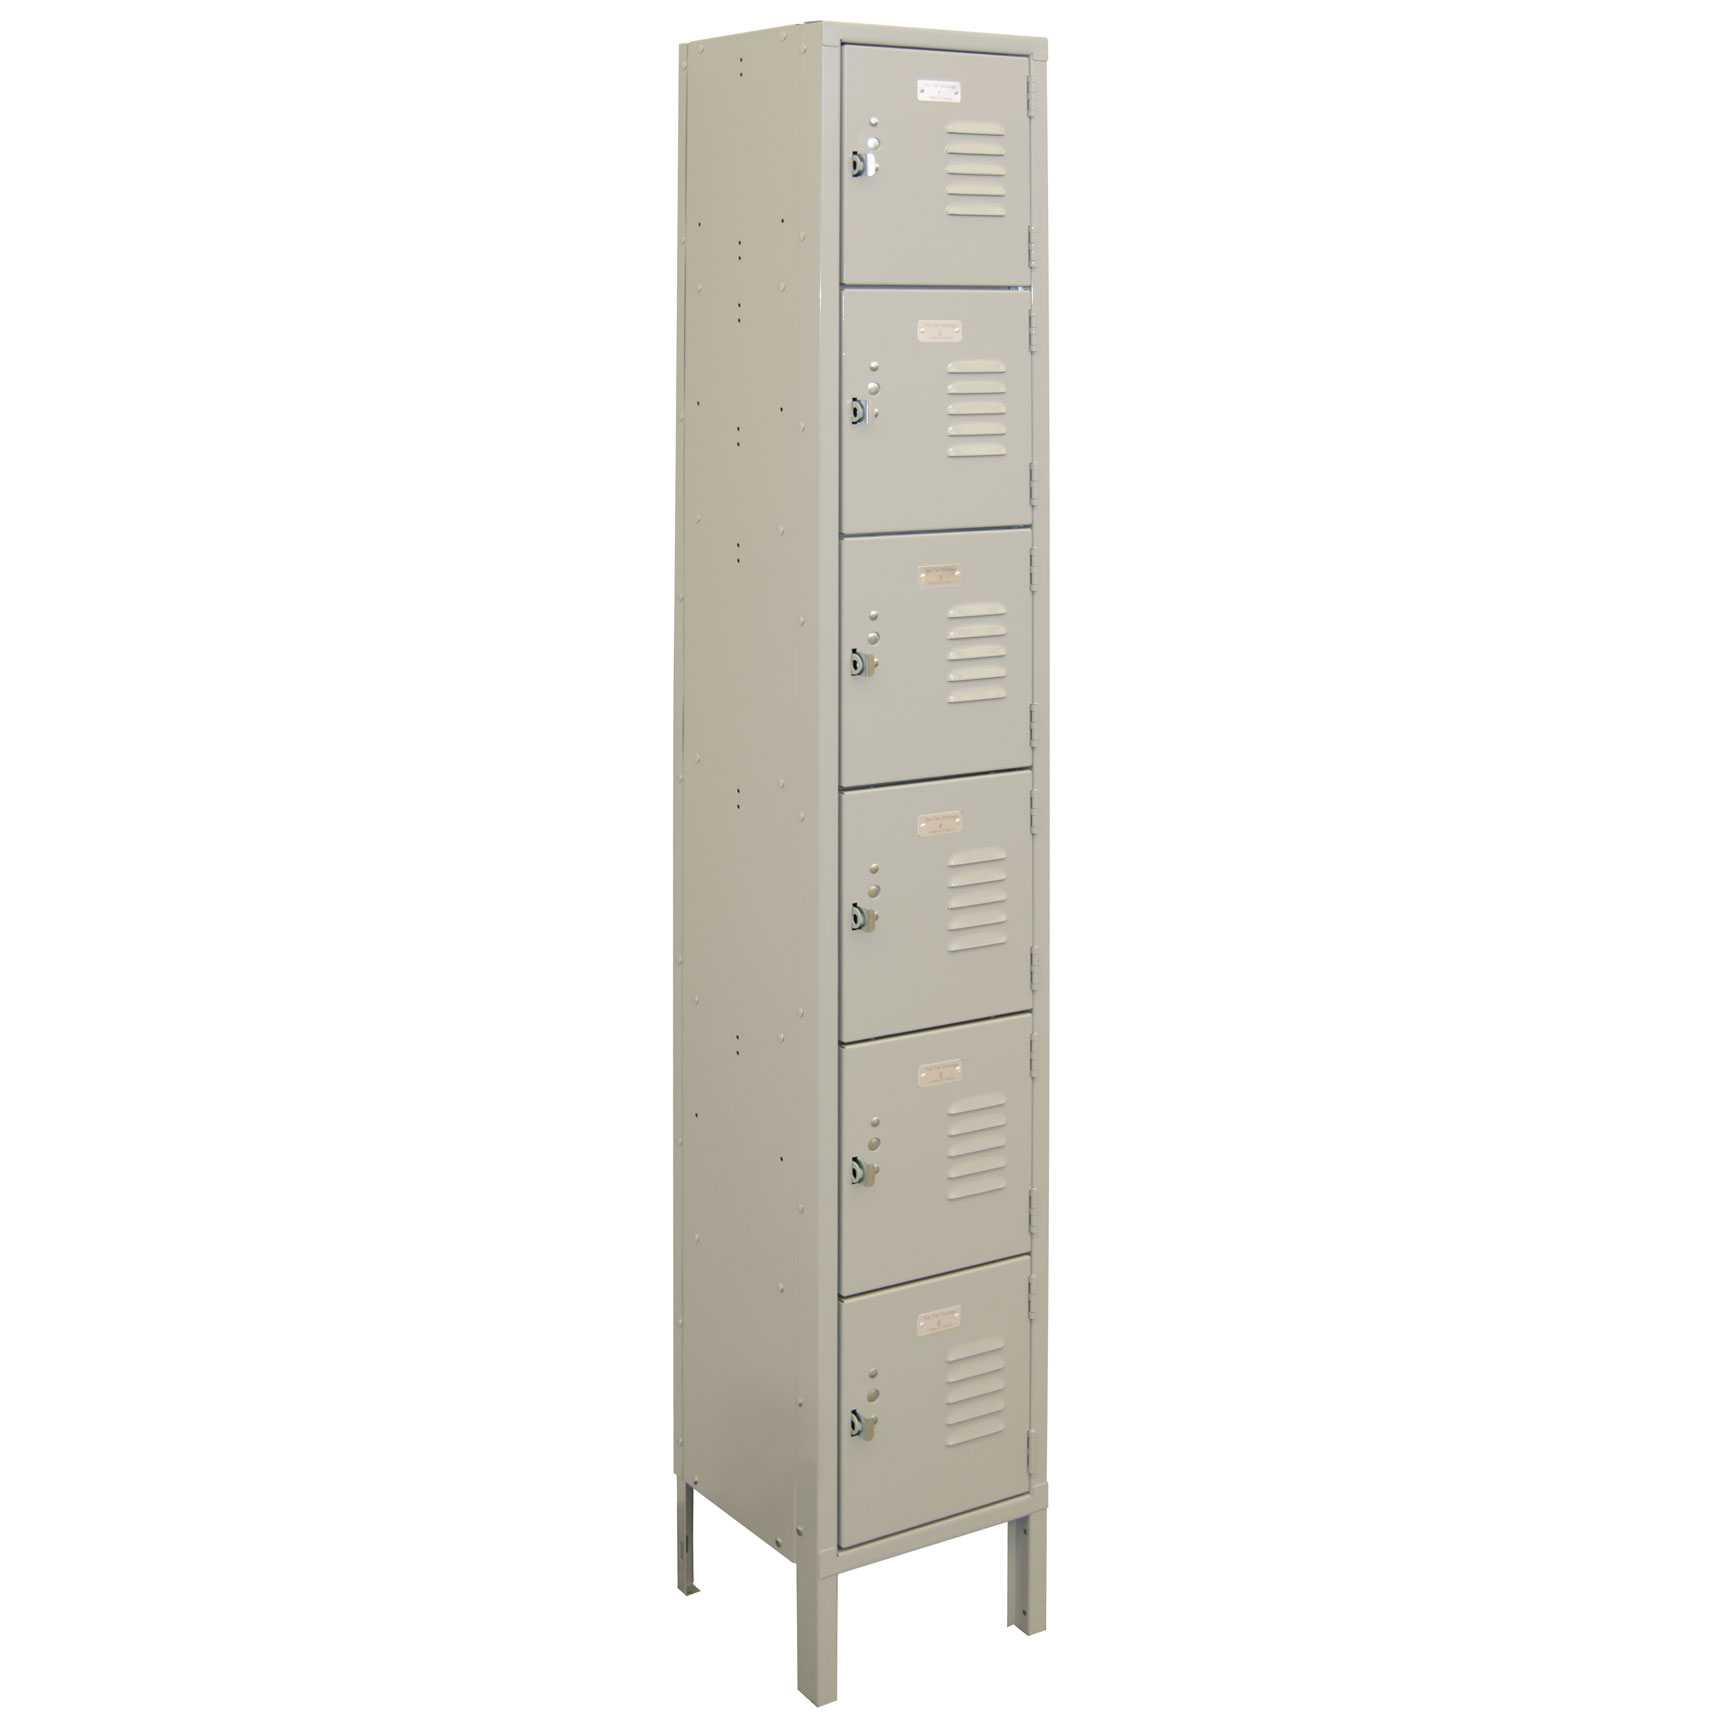 6 Tier 1-Wide Locker